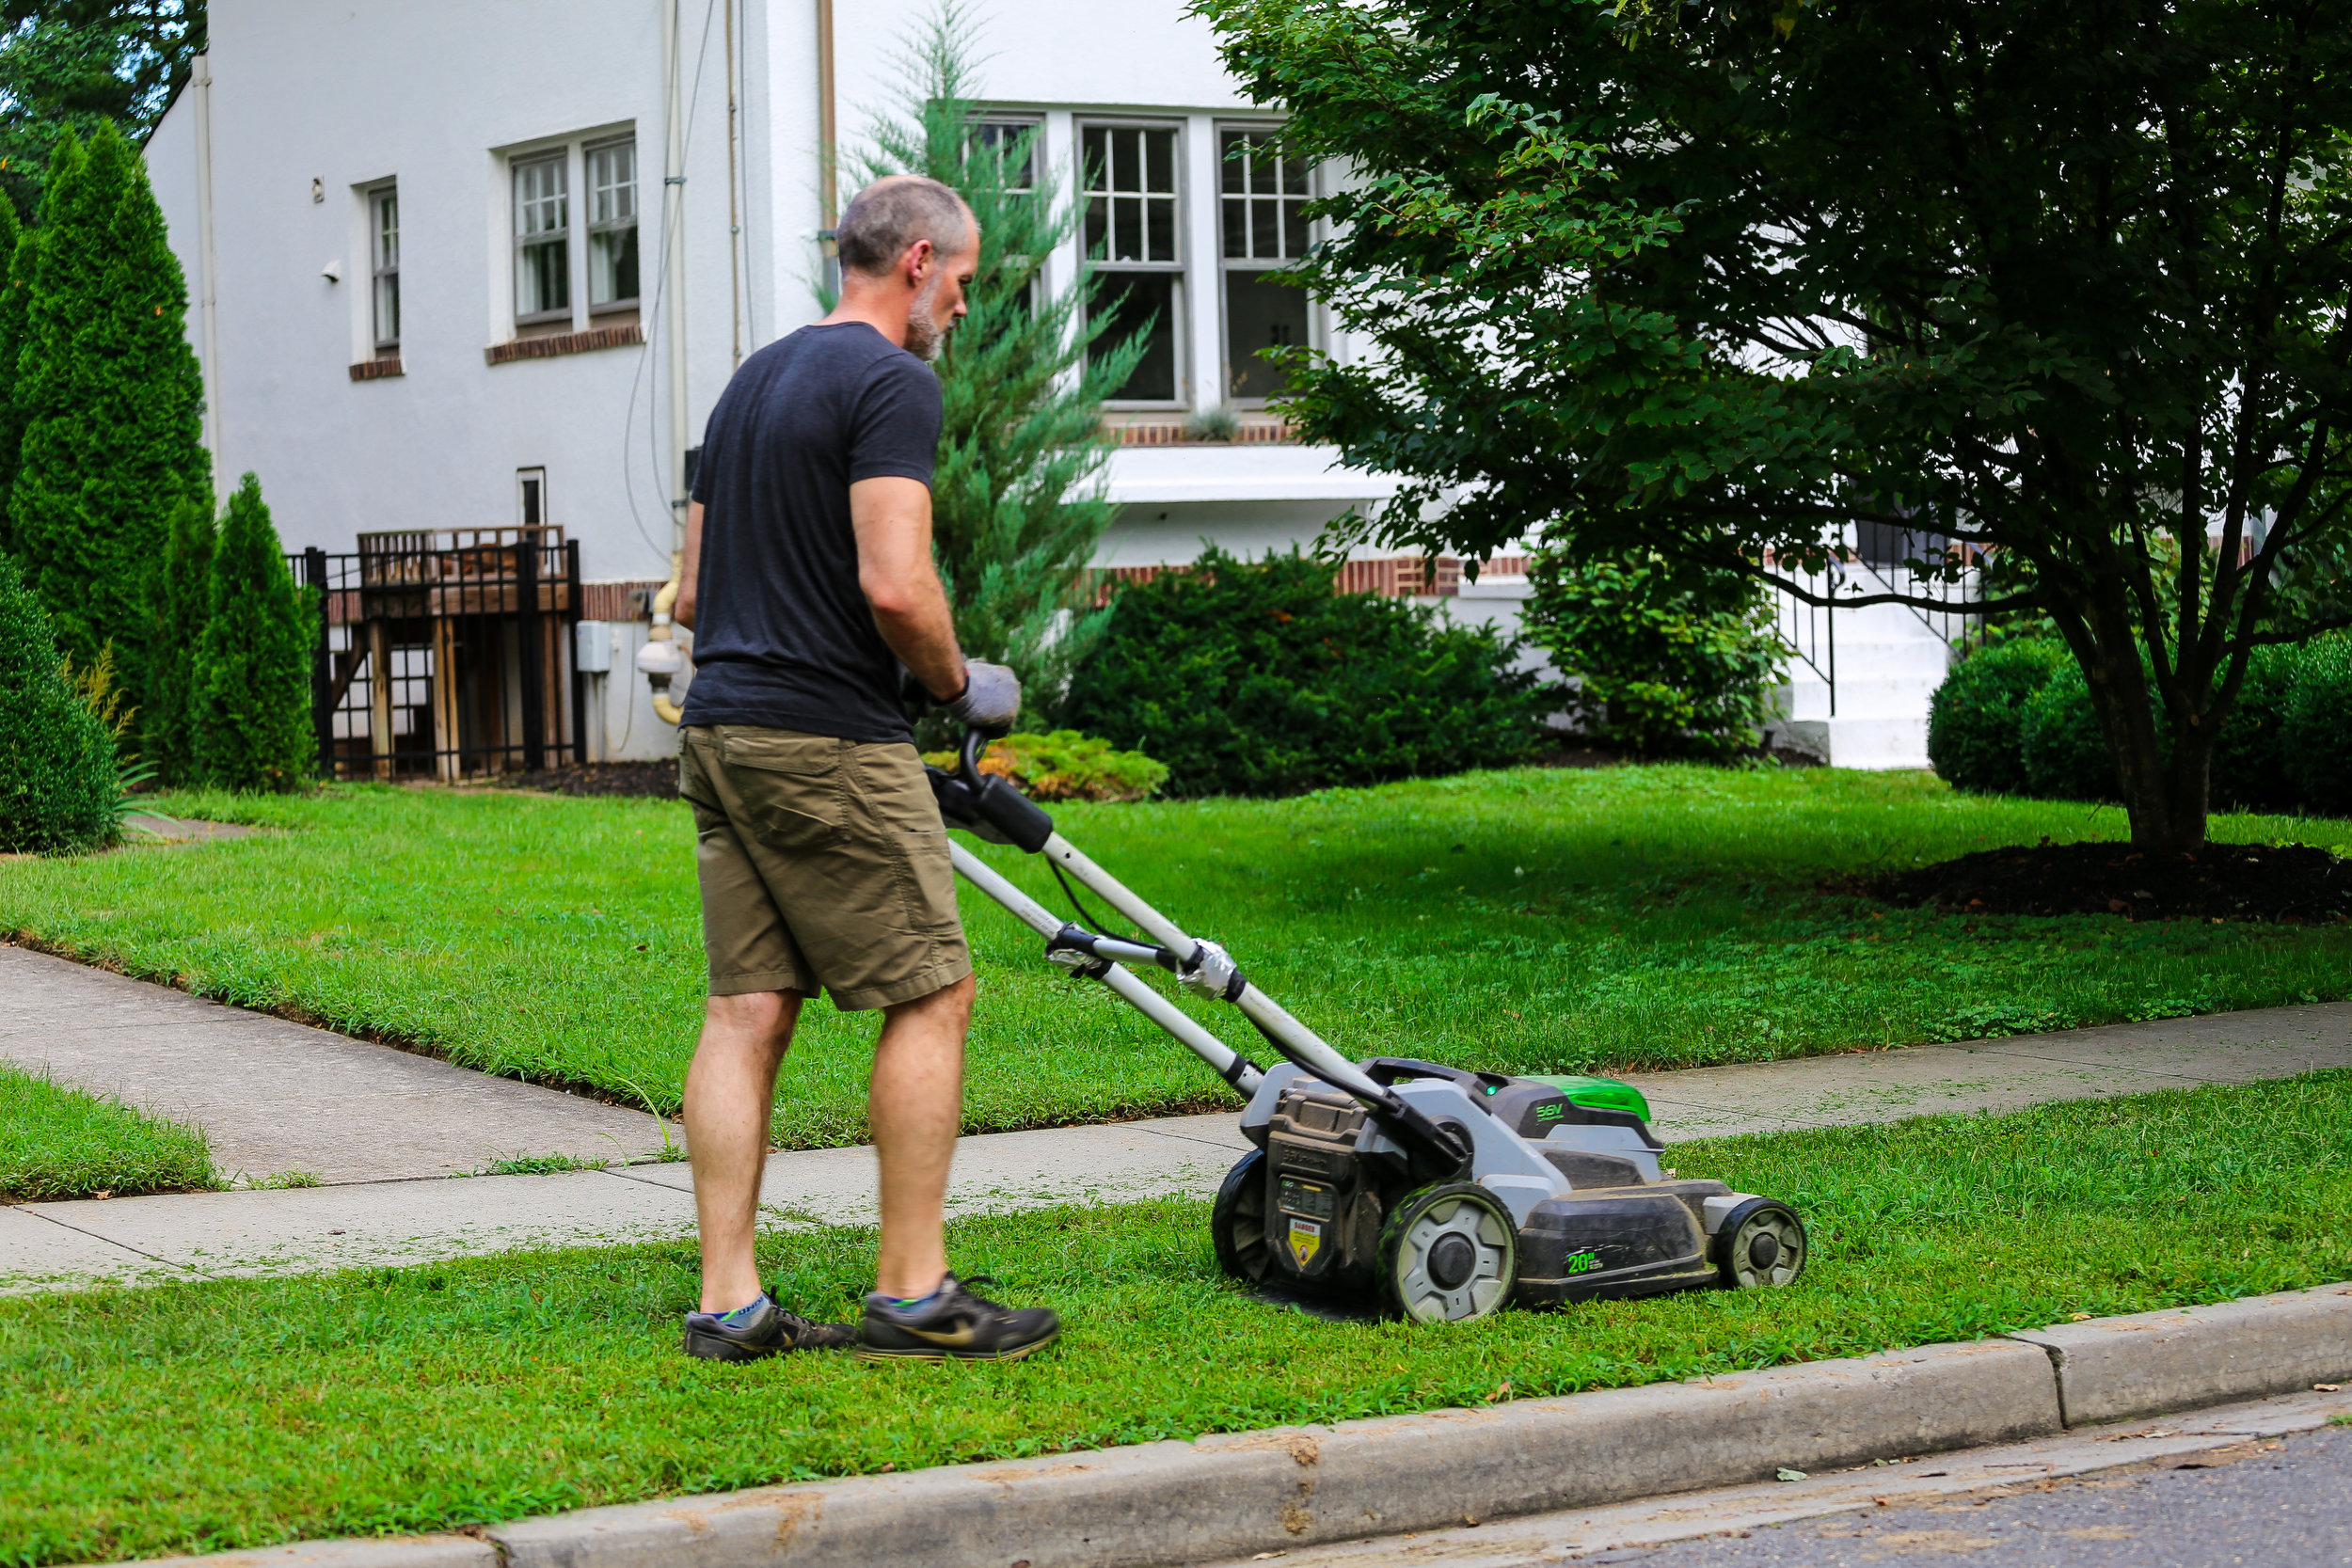 An electric mower in action!